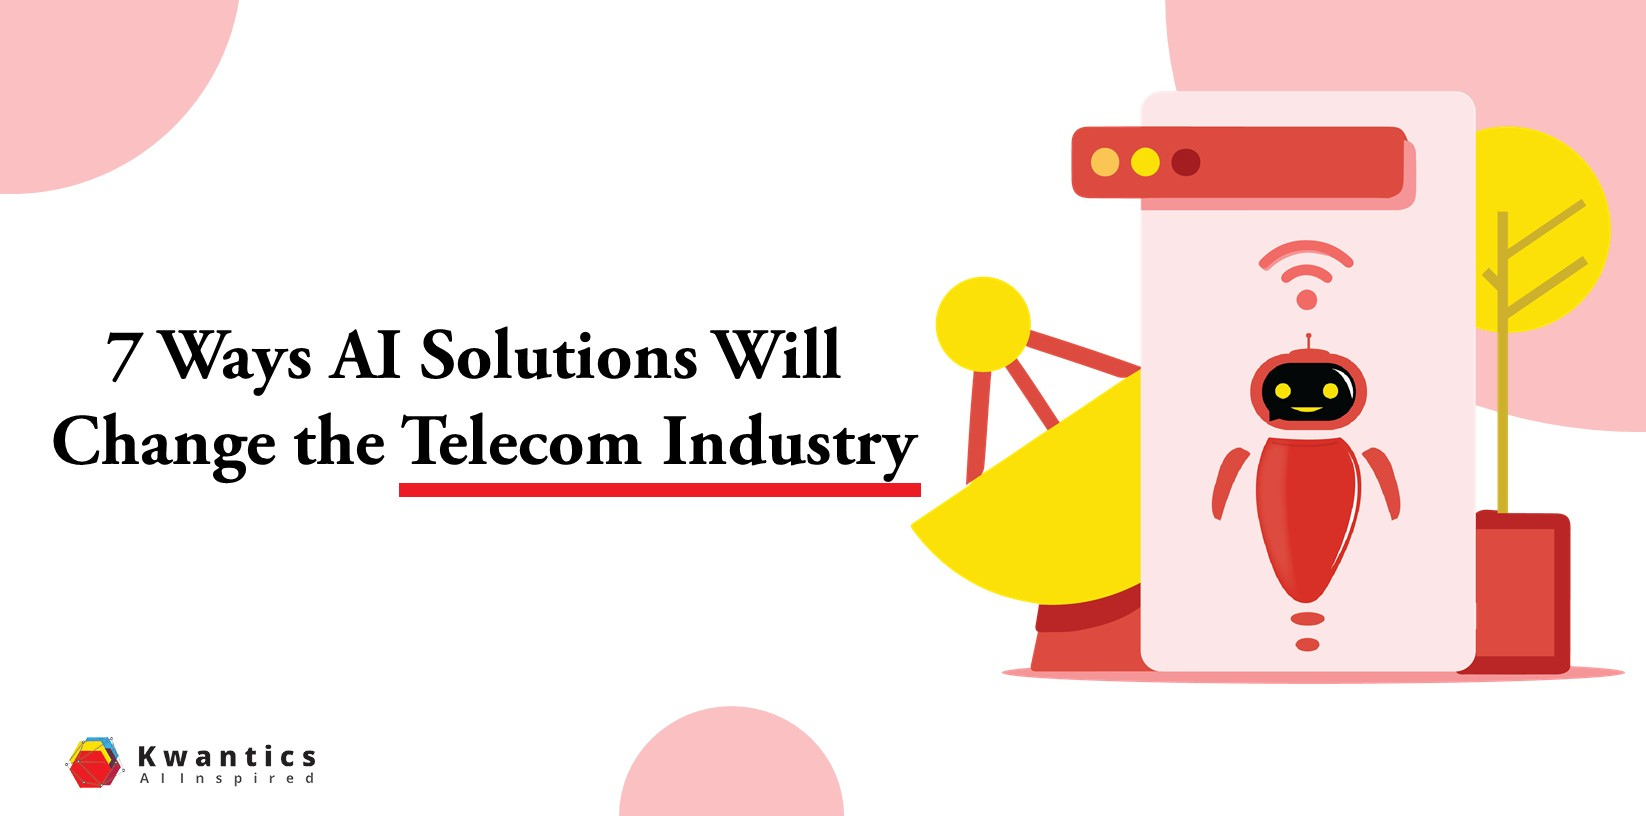 7 Ways AI Solutions Will Change the Telecom Industry